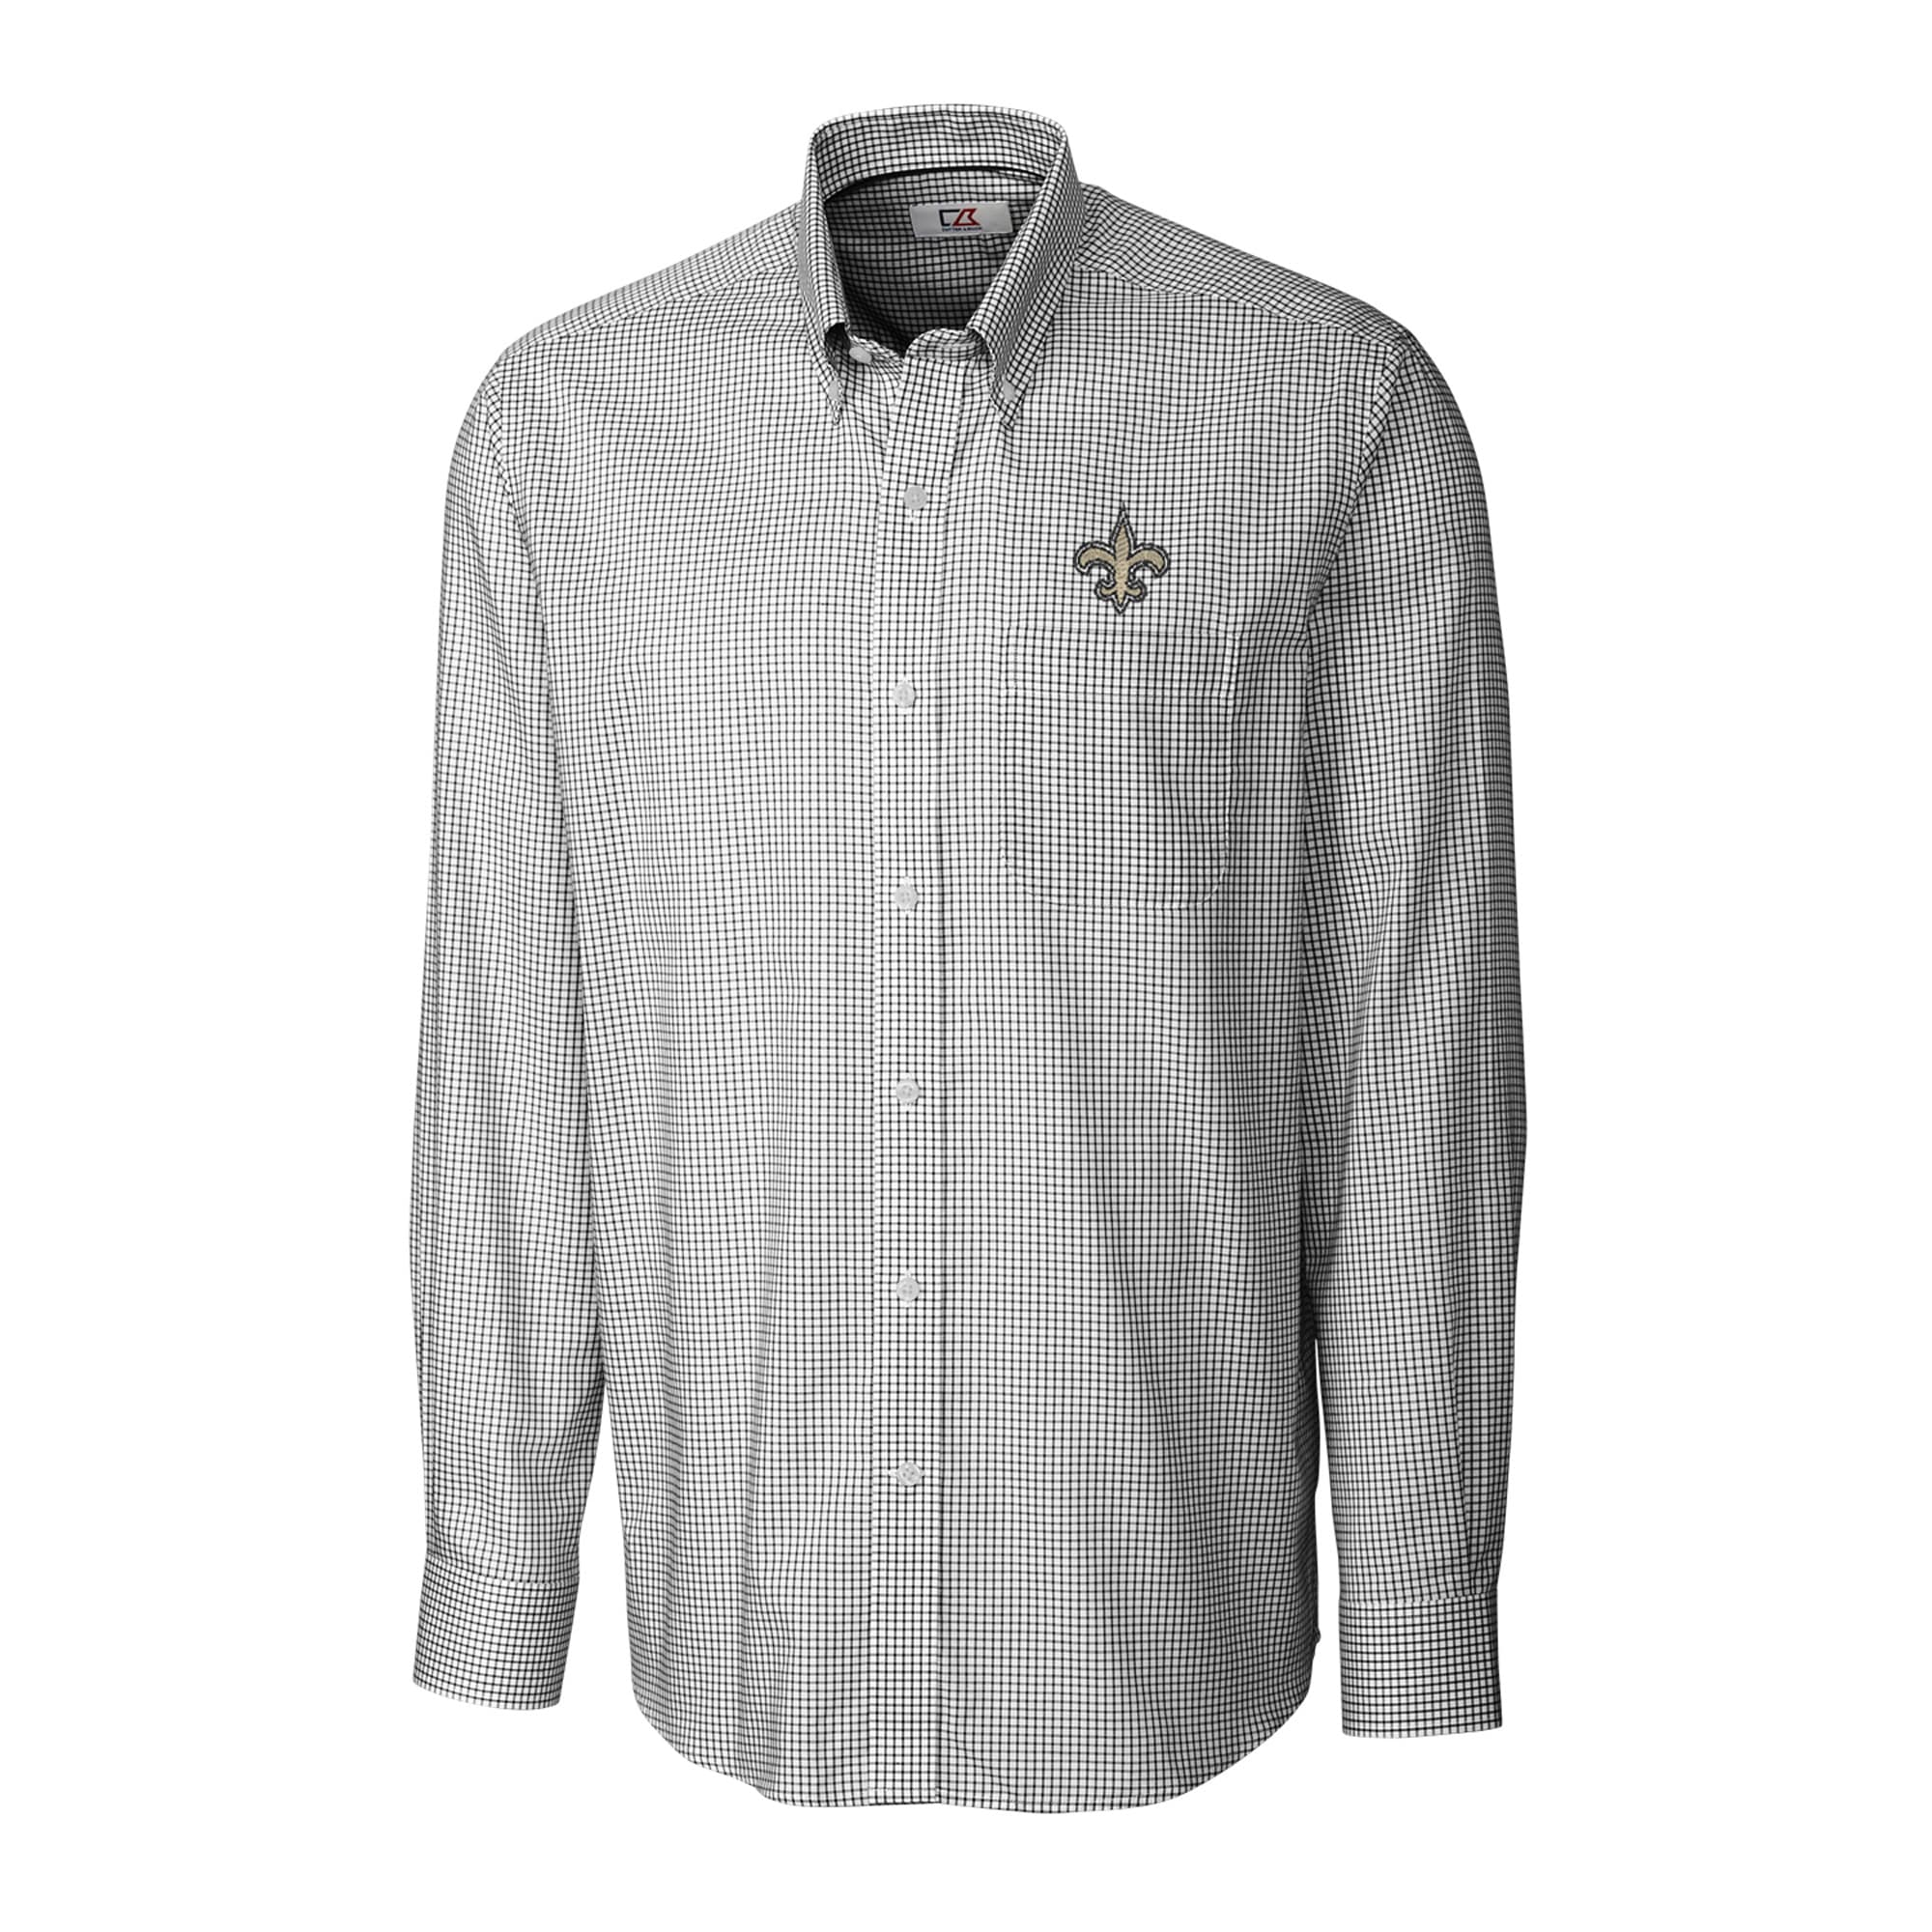 New Orleans Saints Cutter & Buck Big & Tall Epic Easy Care Tattersall Long Sleeve Button Down Shirt - Black